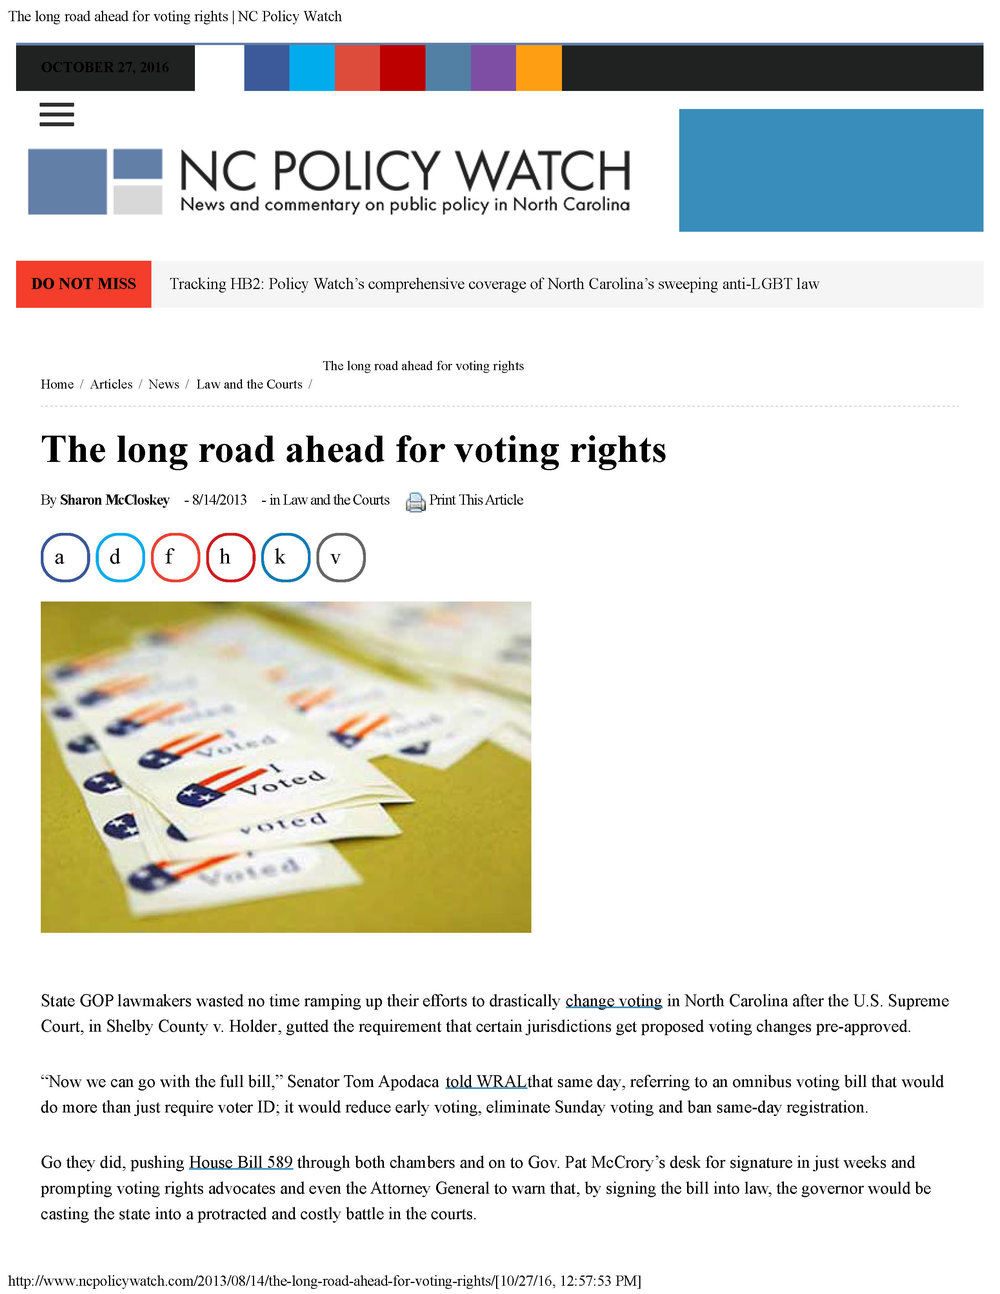 Sharon McCloskey - The long road ahead for voting rights - NC Policy Watch_Page_1.jpg